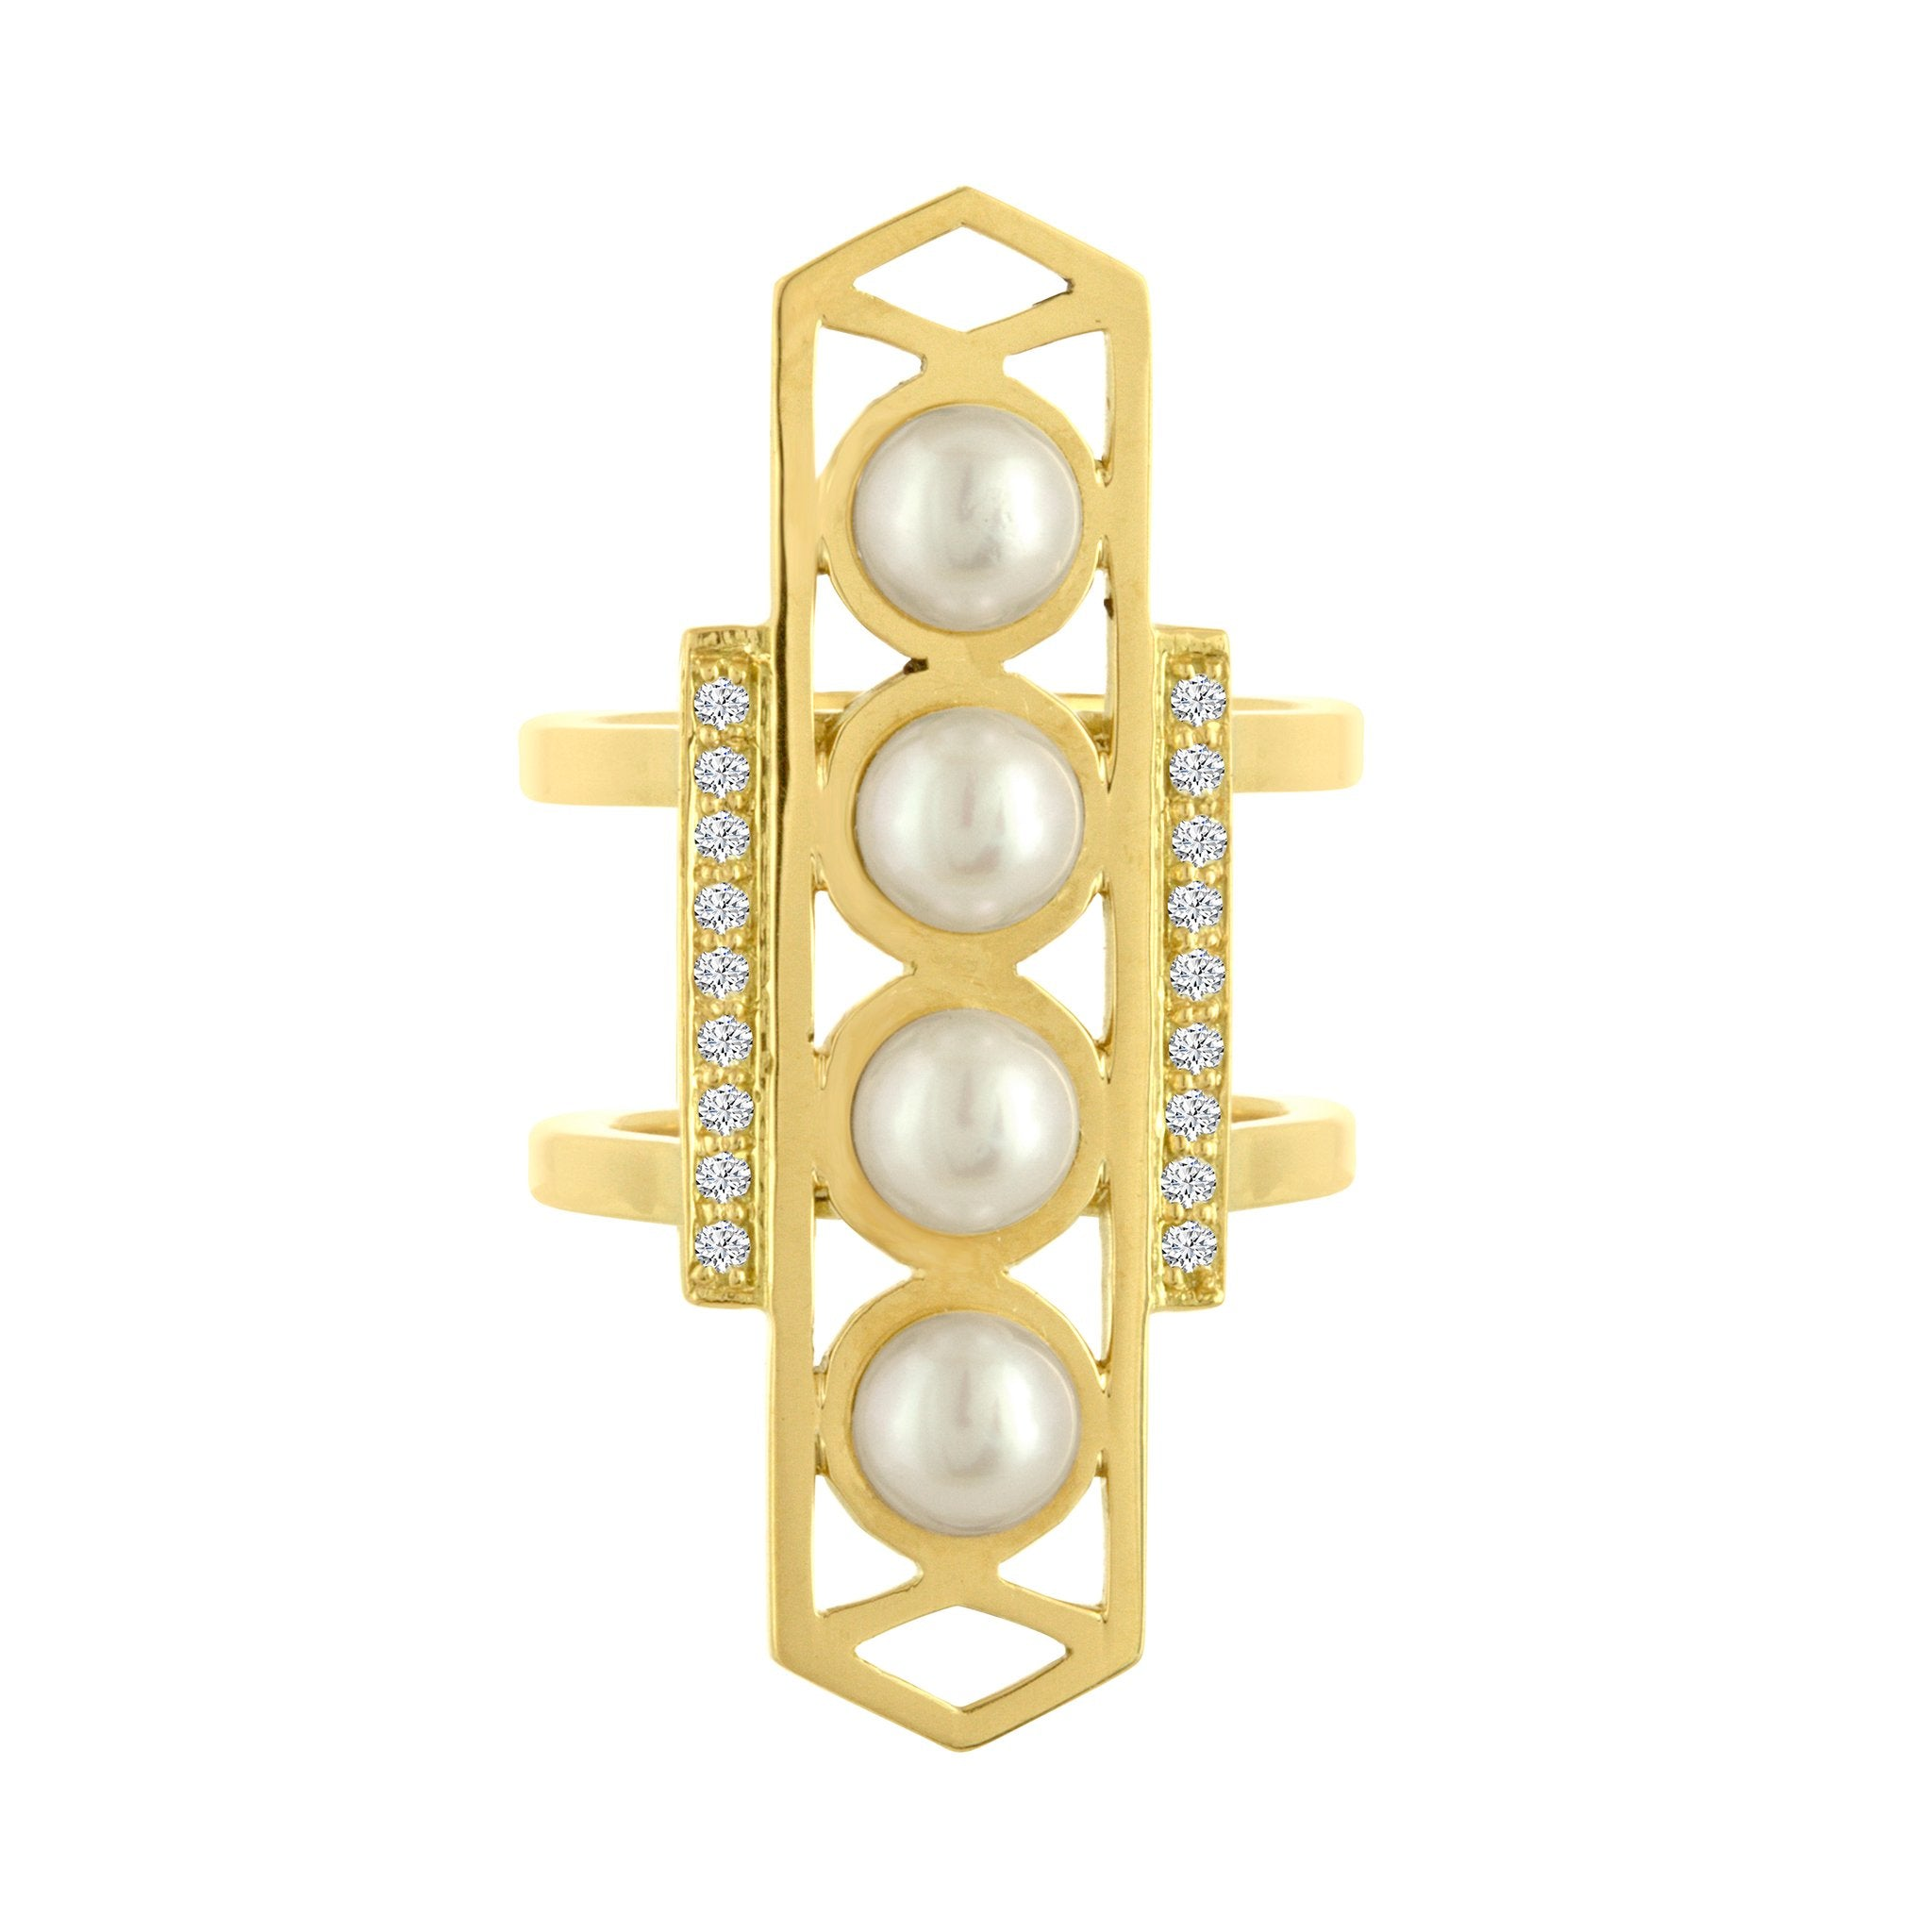 Cosmo Ring: 18k Gold, White Pearls, Diamonds